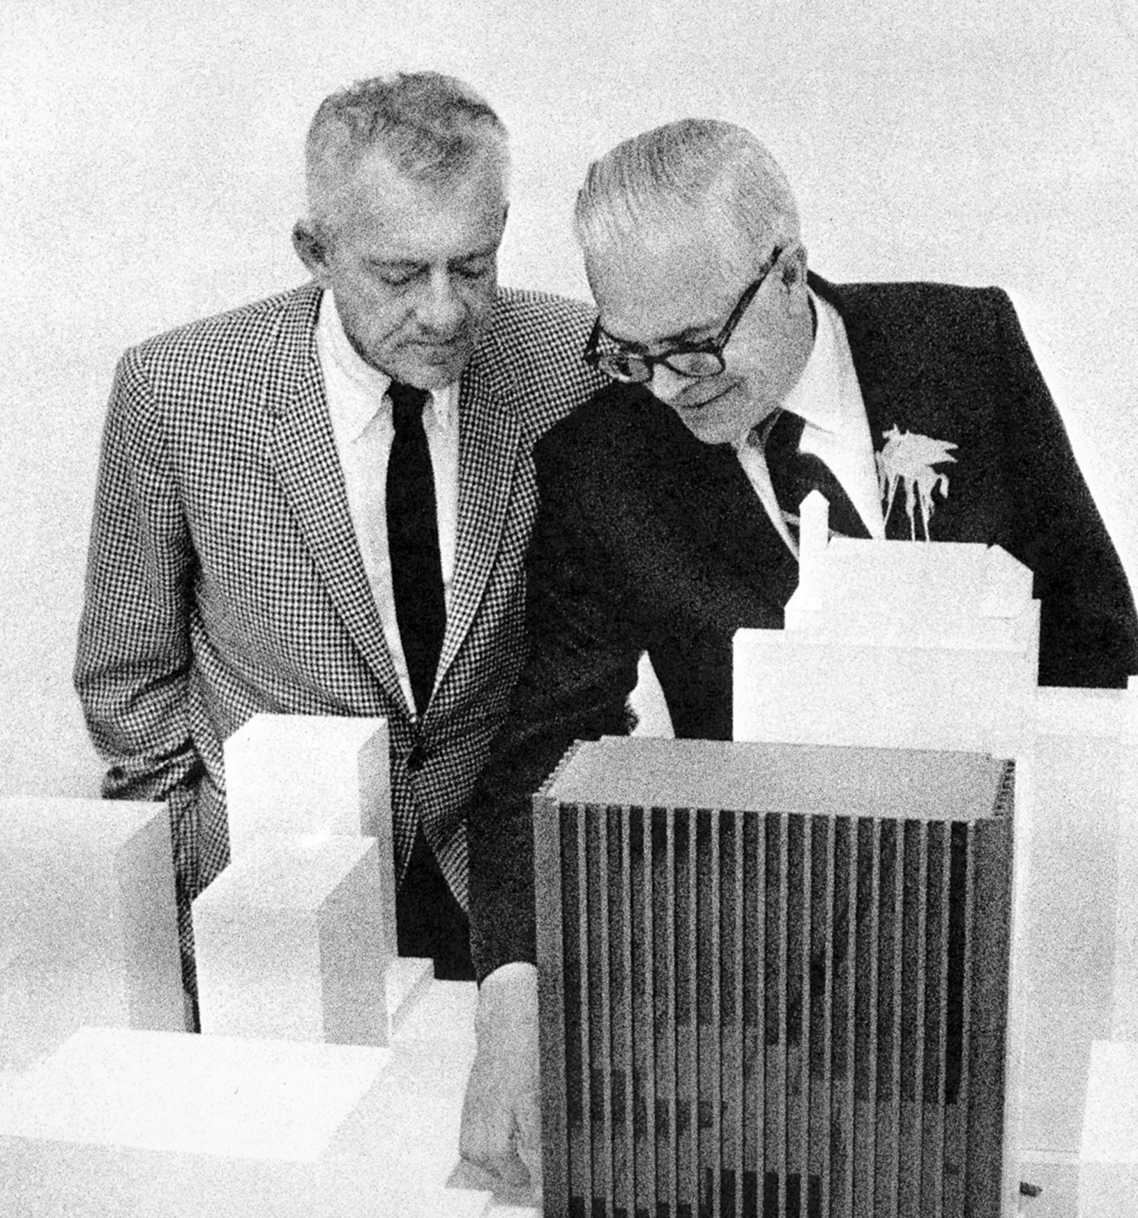 Black and white image of Howard K. Smith, HKS's founder, working on a design model on a table